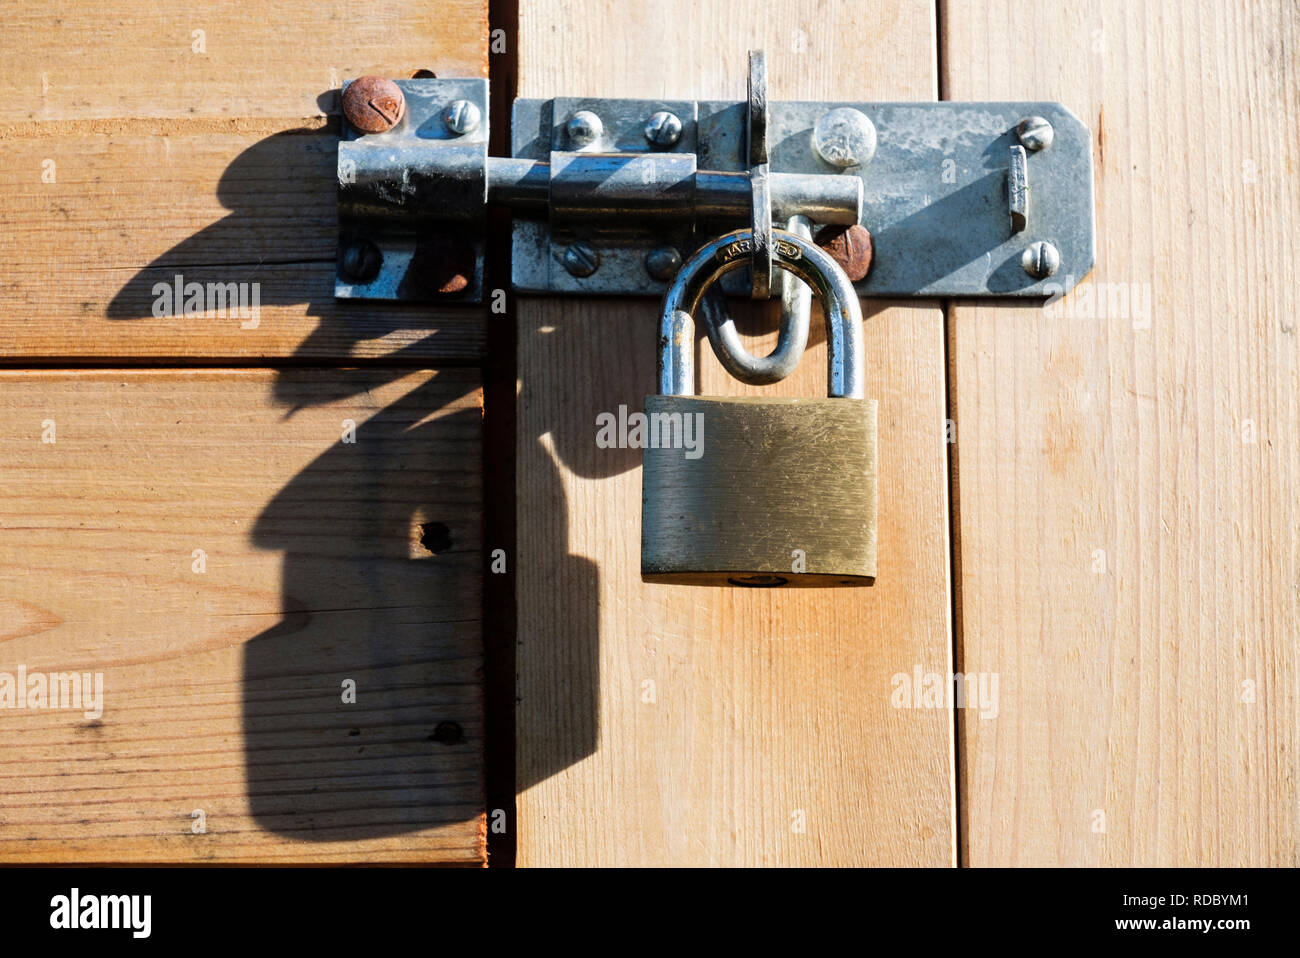 Brass padlock with hardened steel shackle securing a bolt on a wooden shed door locking it for security. UK - Stock Image